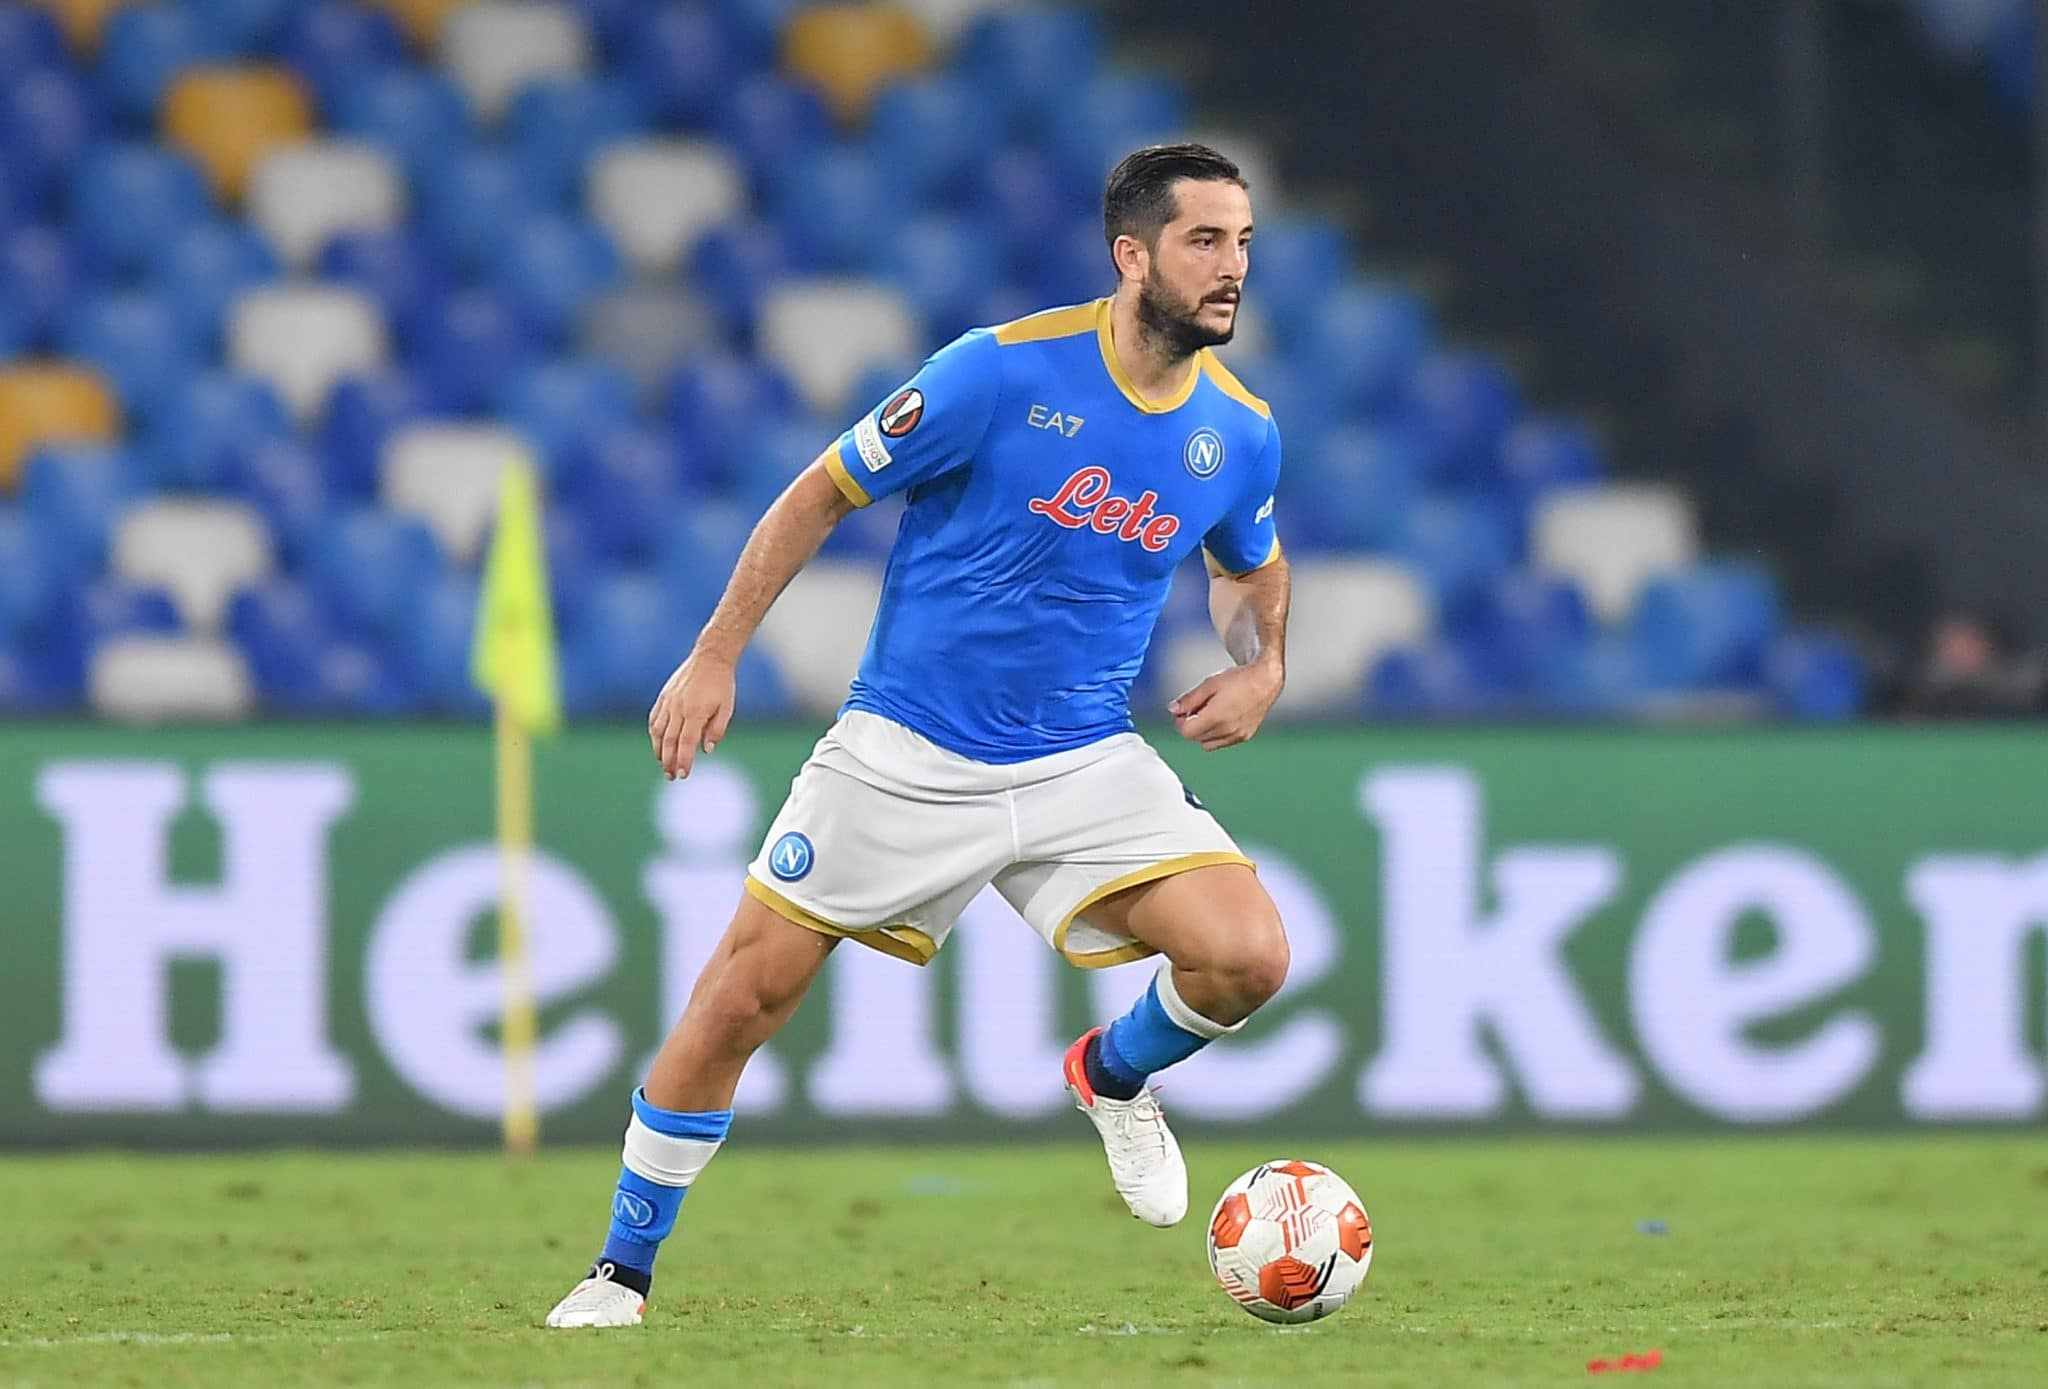 NAPLES, ITALY - SEPTEMBER 30: Konstantinos Manolas of SSC Napoli controls the ball during the UEFA Europa League group C match between SSC Napoli and Spartak Moskva at Stadio Diego Armando Maradona on September 30, 2021 in Naples, Italy. (Photo by Francesco Pecoraro/Getty Images)